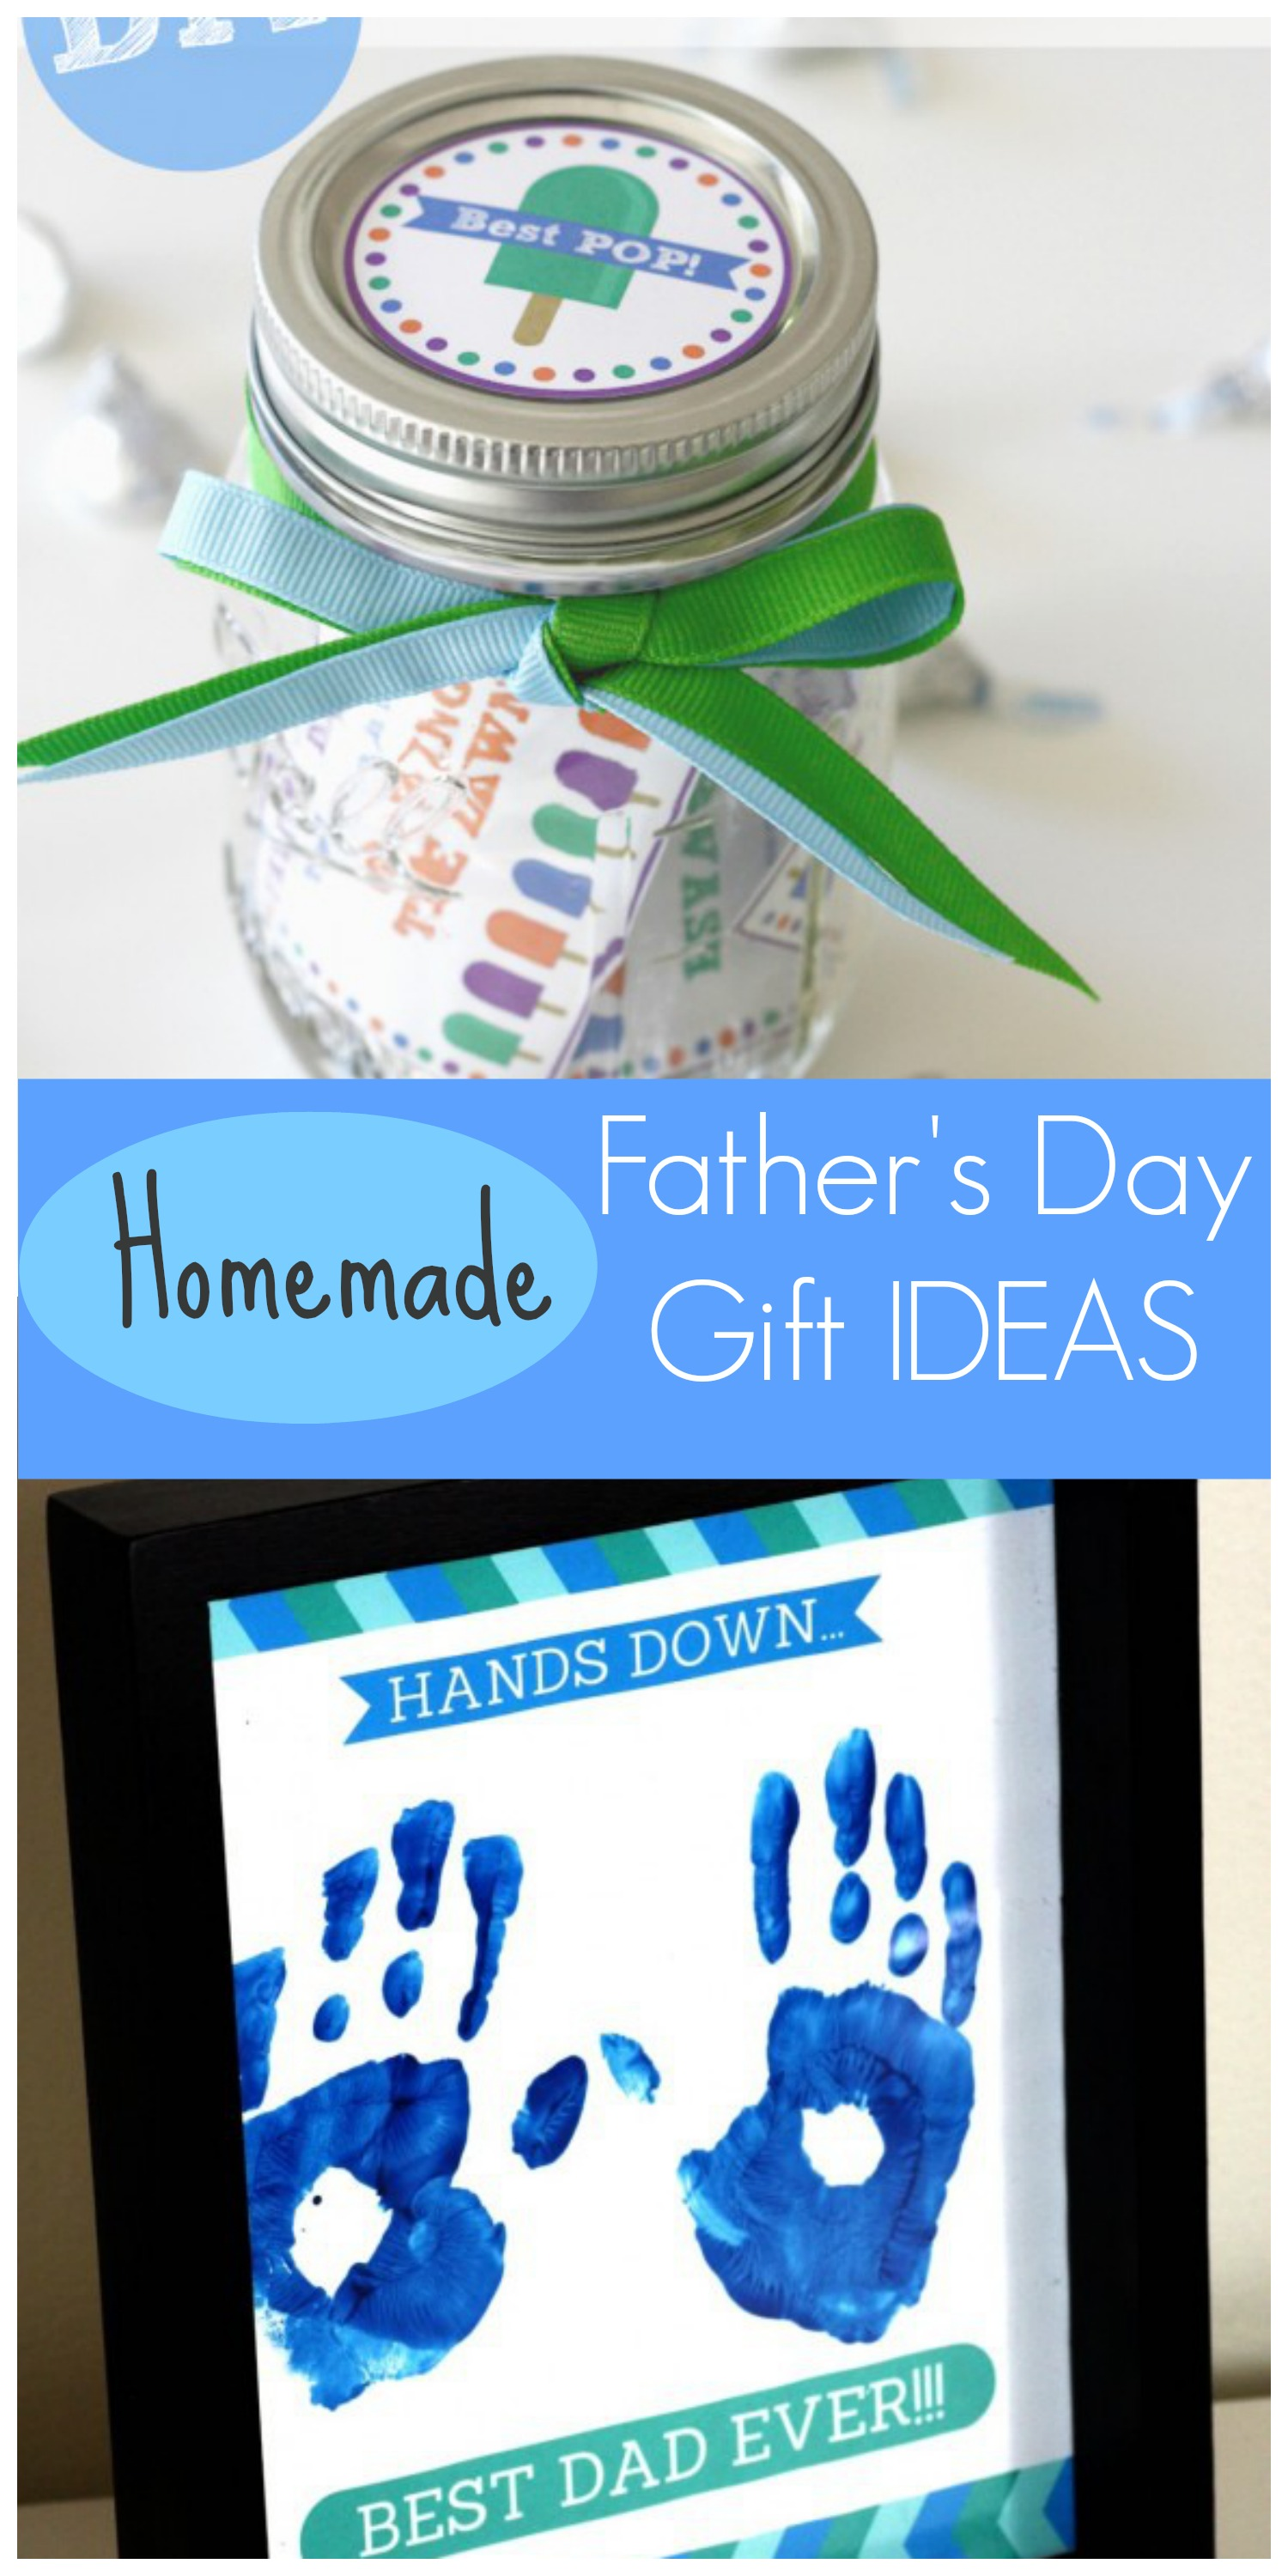 Last Minute Homemade Fatheru0027s Day Gift Ideas for Kids  sc 1 st  Catch My Party & Last Minute Homemade Fatheru0027s Day Gift Ideas for Kids | Catch My Party